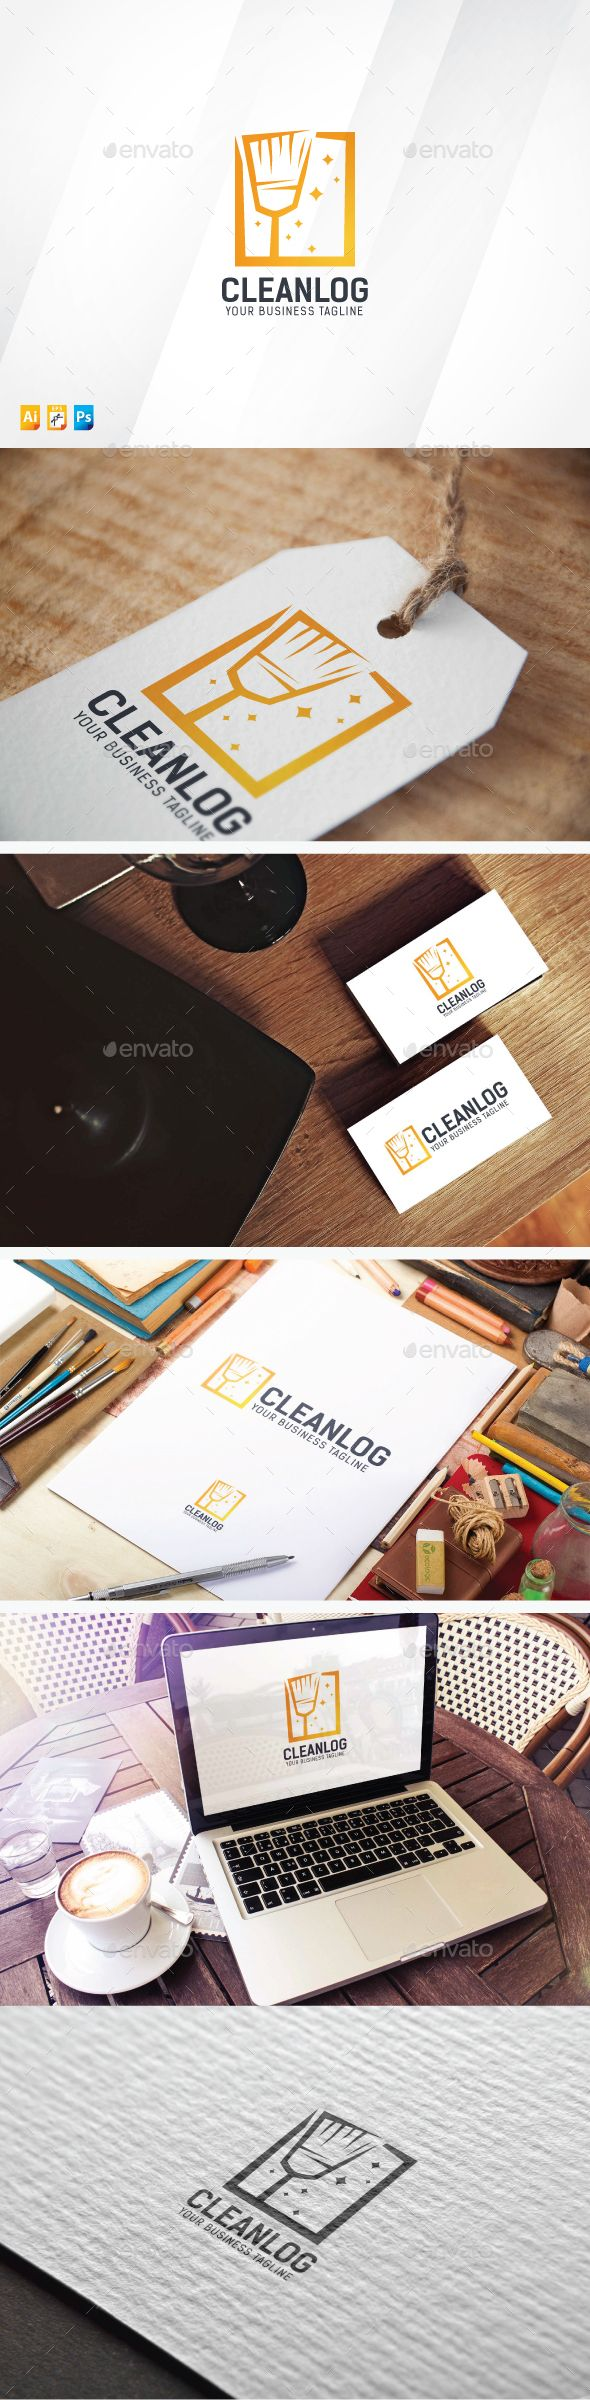 Clean  - Logo Design Template Vector #logotype Download it here: http://graphicriver.net/item/clean-logo/13826294?s_rank=595?ref=nexion